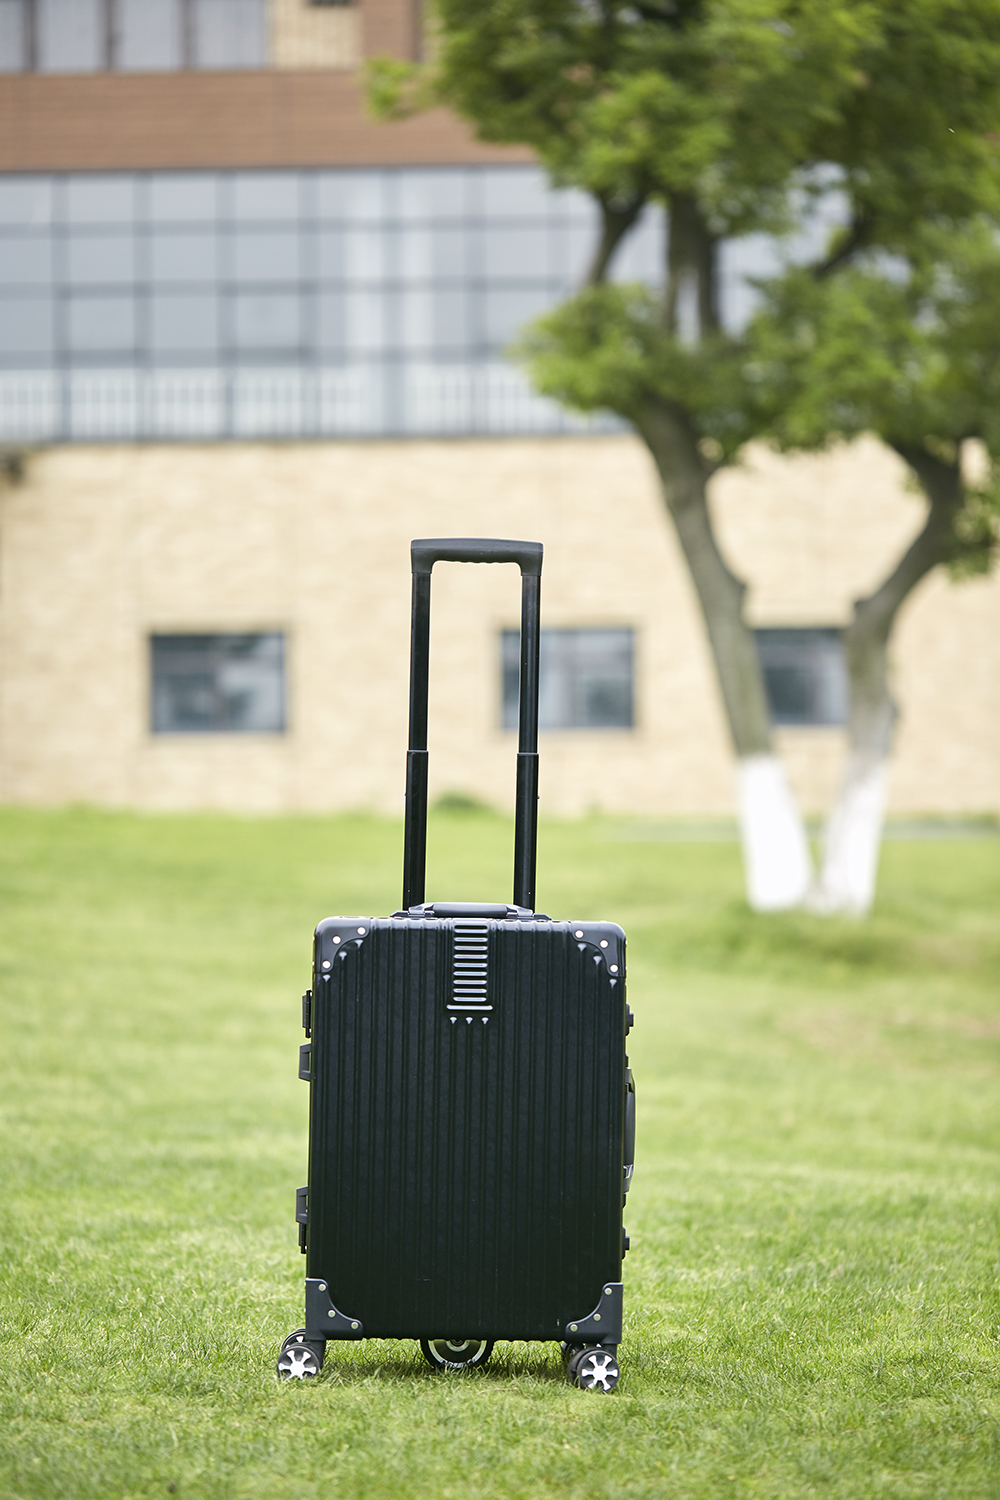 Airwheel SR6 power assisted suitcase